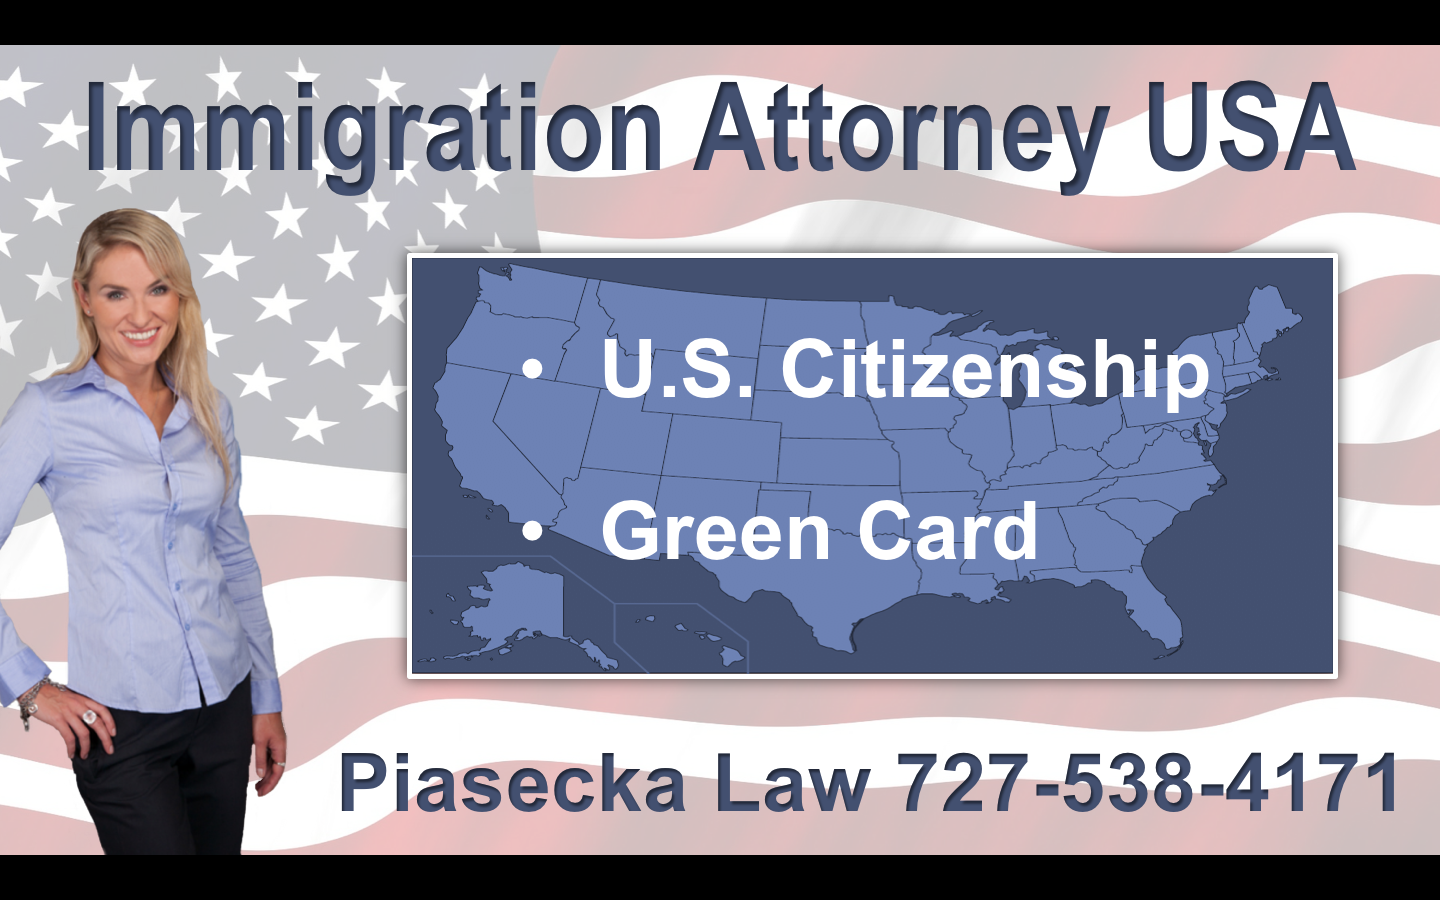 Immigration Attorney USA Attorney Agnieszka Aga Piasecka